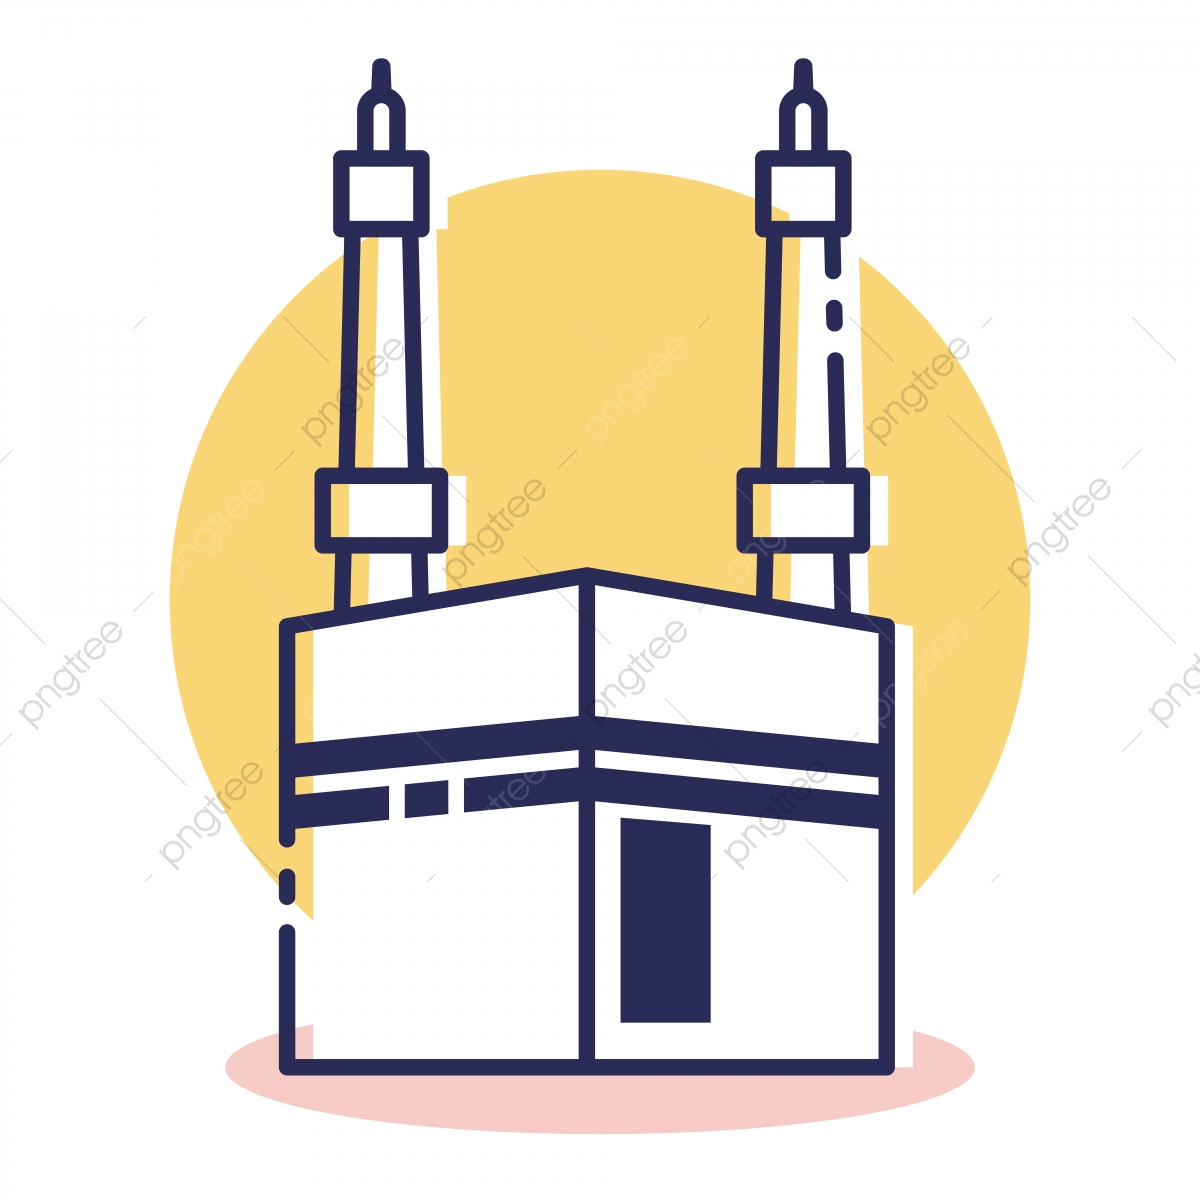 kabah png images vector and psd files free download on pngtree https pngtree com freepng travel and destination kabah icon with outline style 3993273 html